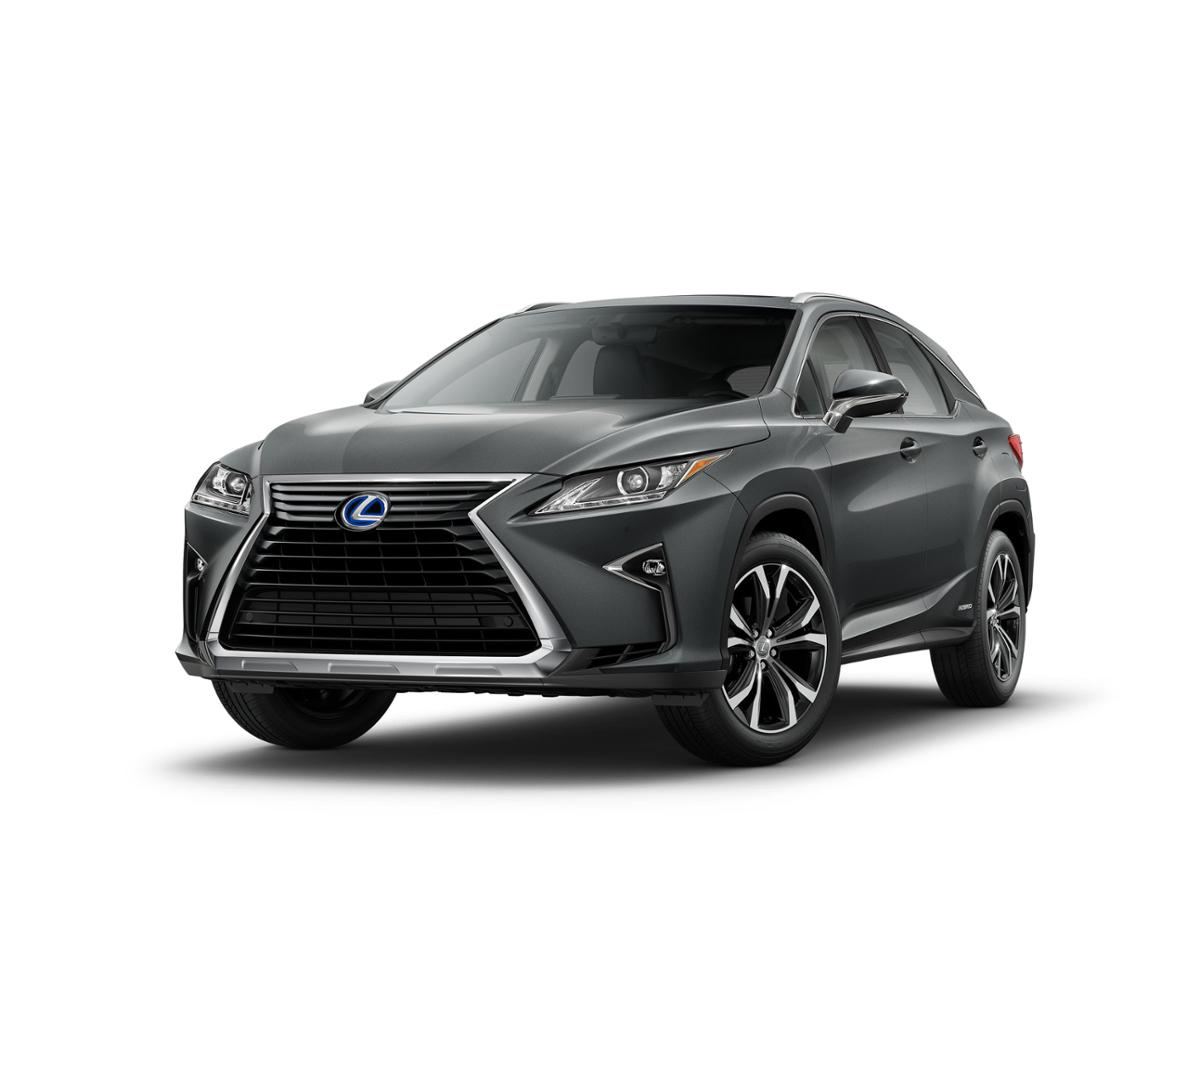 2018 Lexus RX 450h Vehicle Photo in Mission Viejo, CA 92692